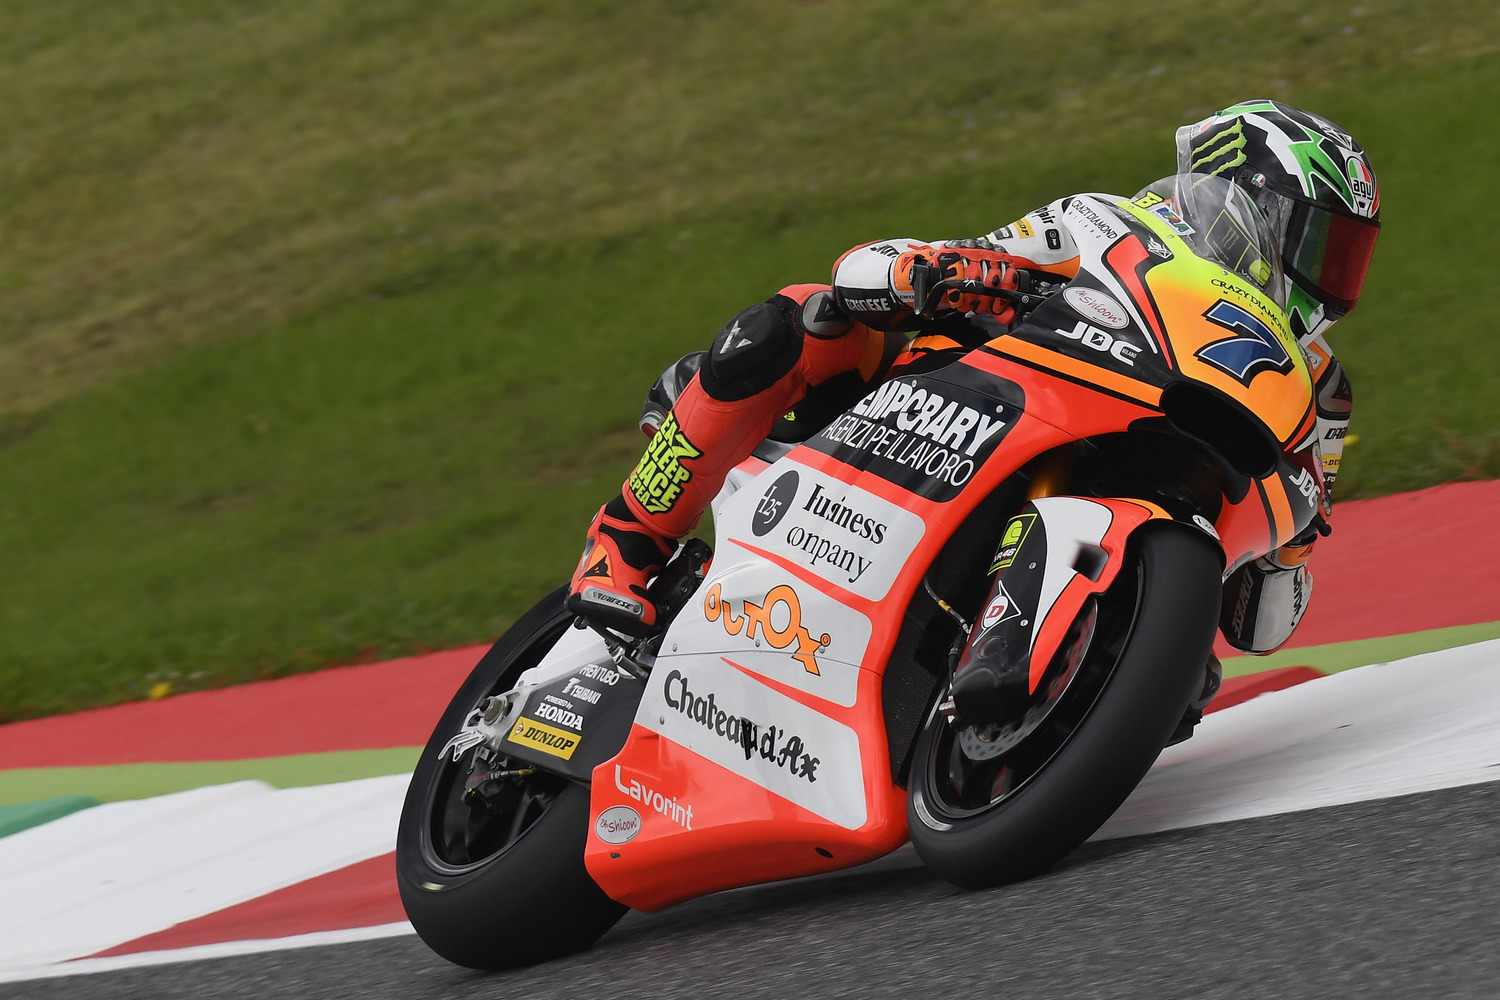 Top10 for Baldassarri and Marini at Mugello